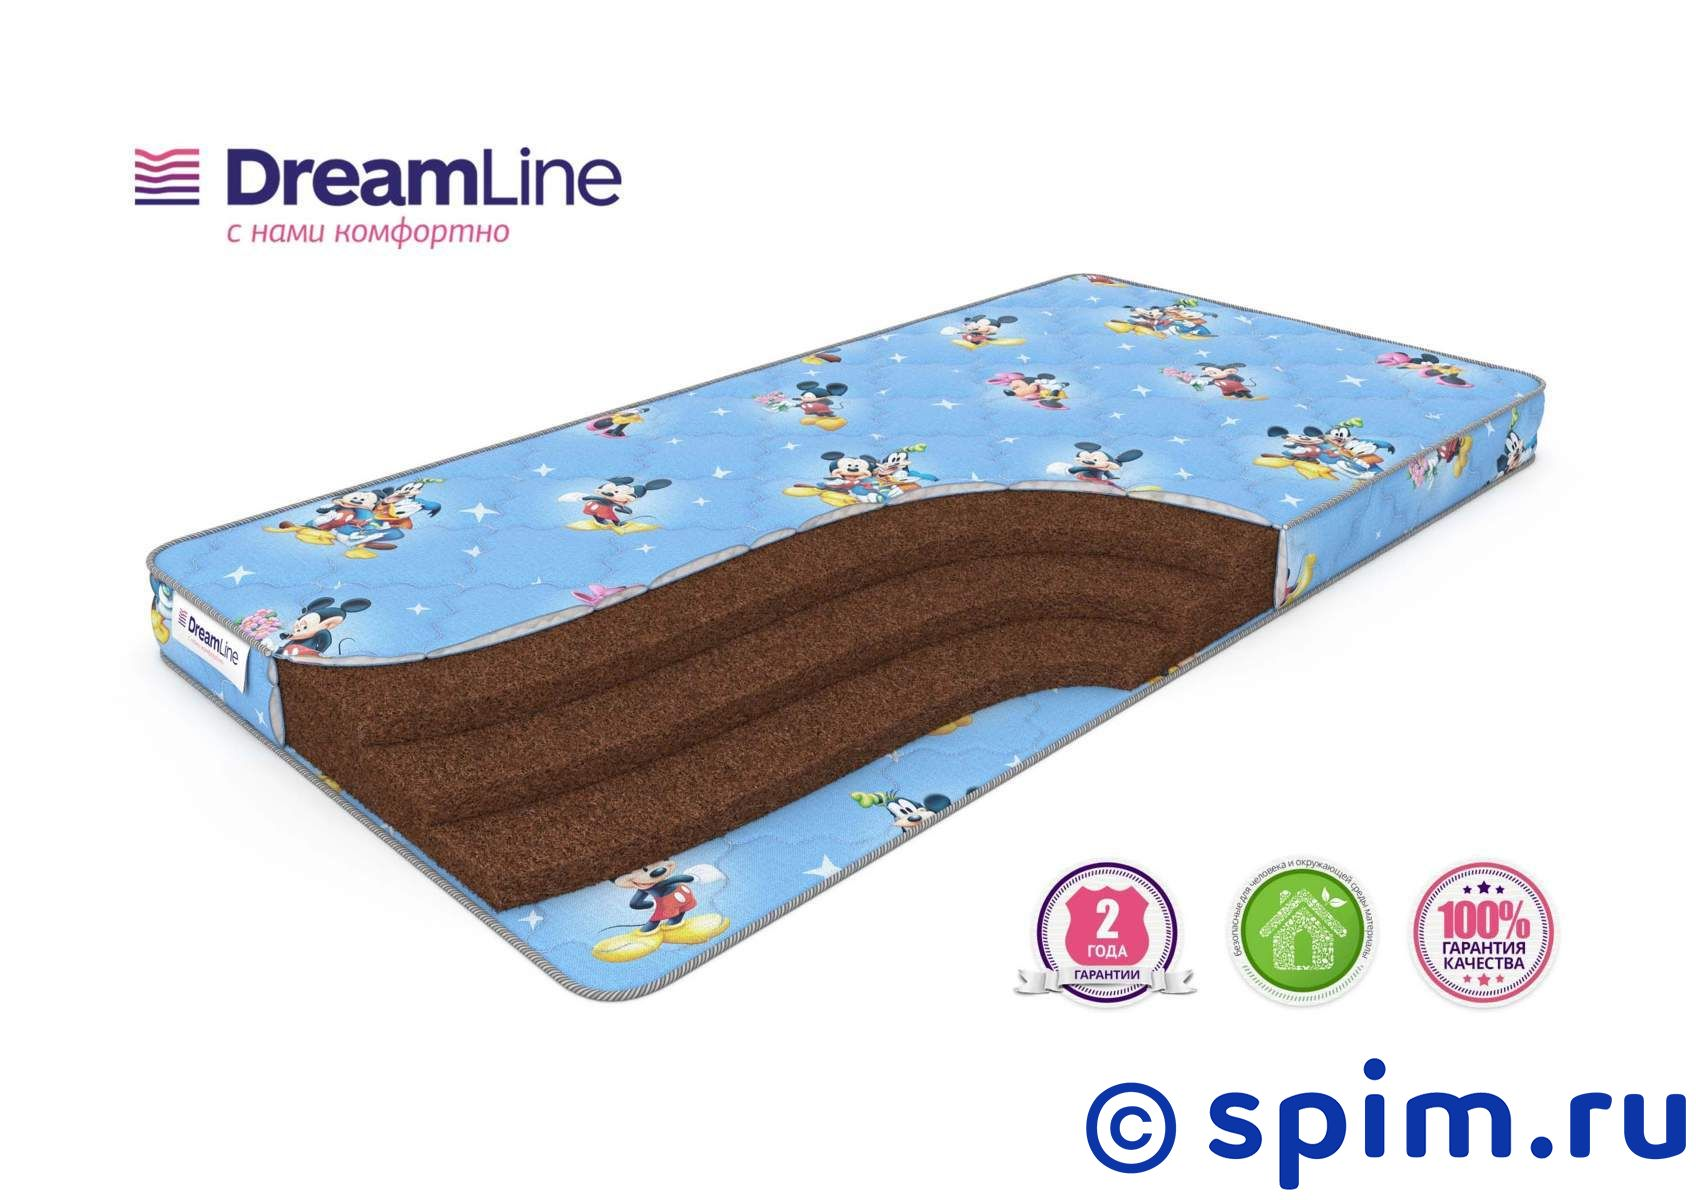 Детский матрас DreamLine Baby Dream 9 70х140 см